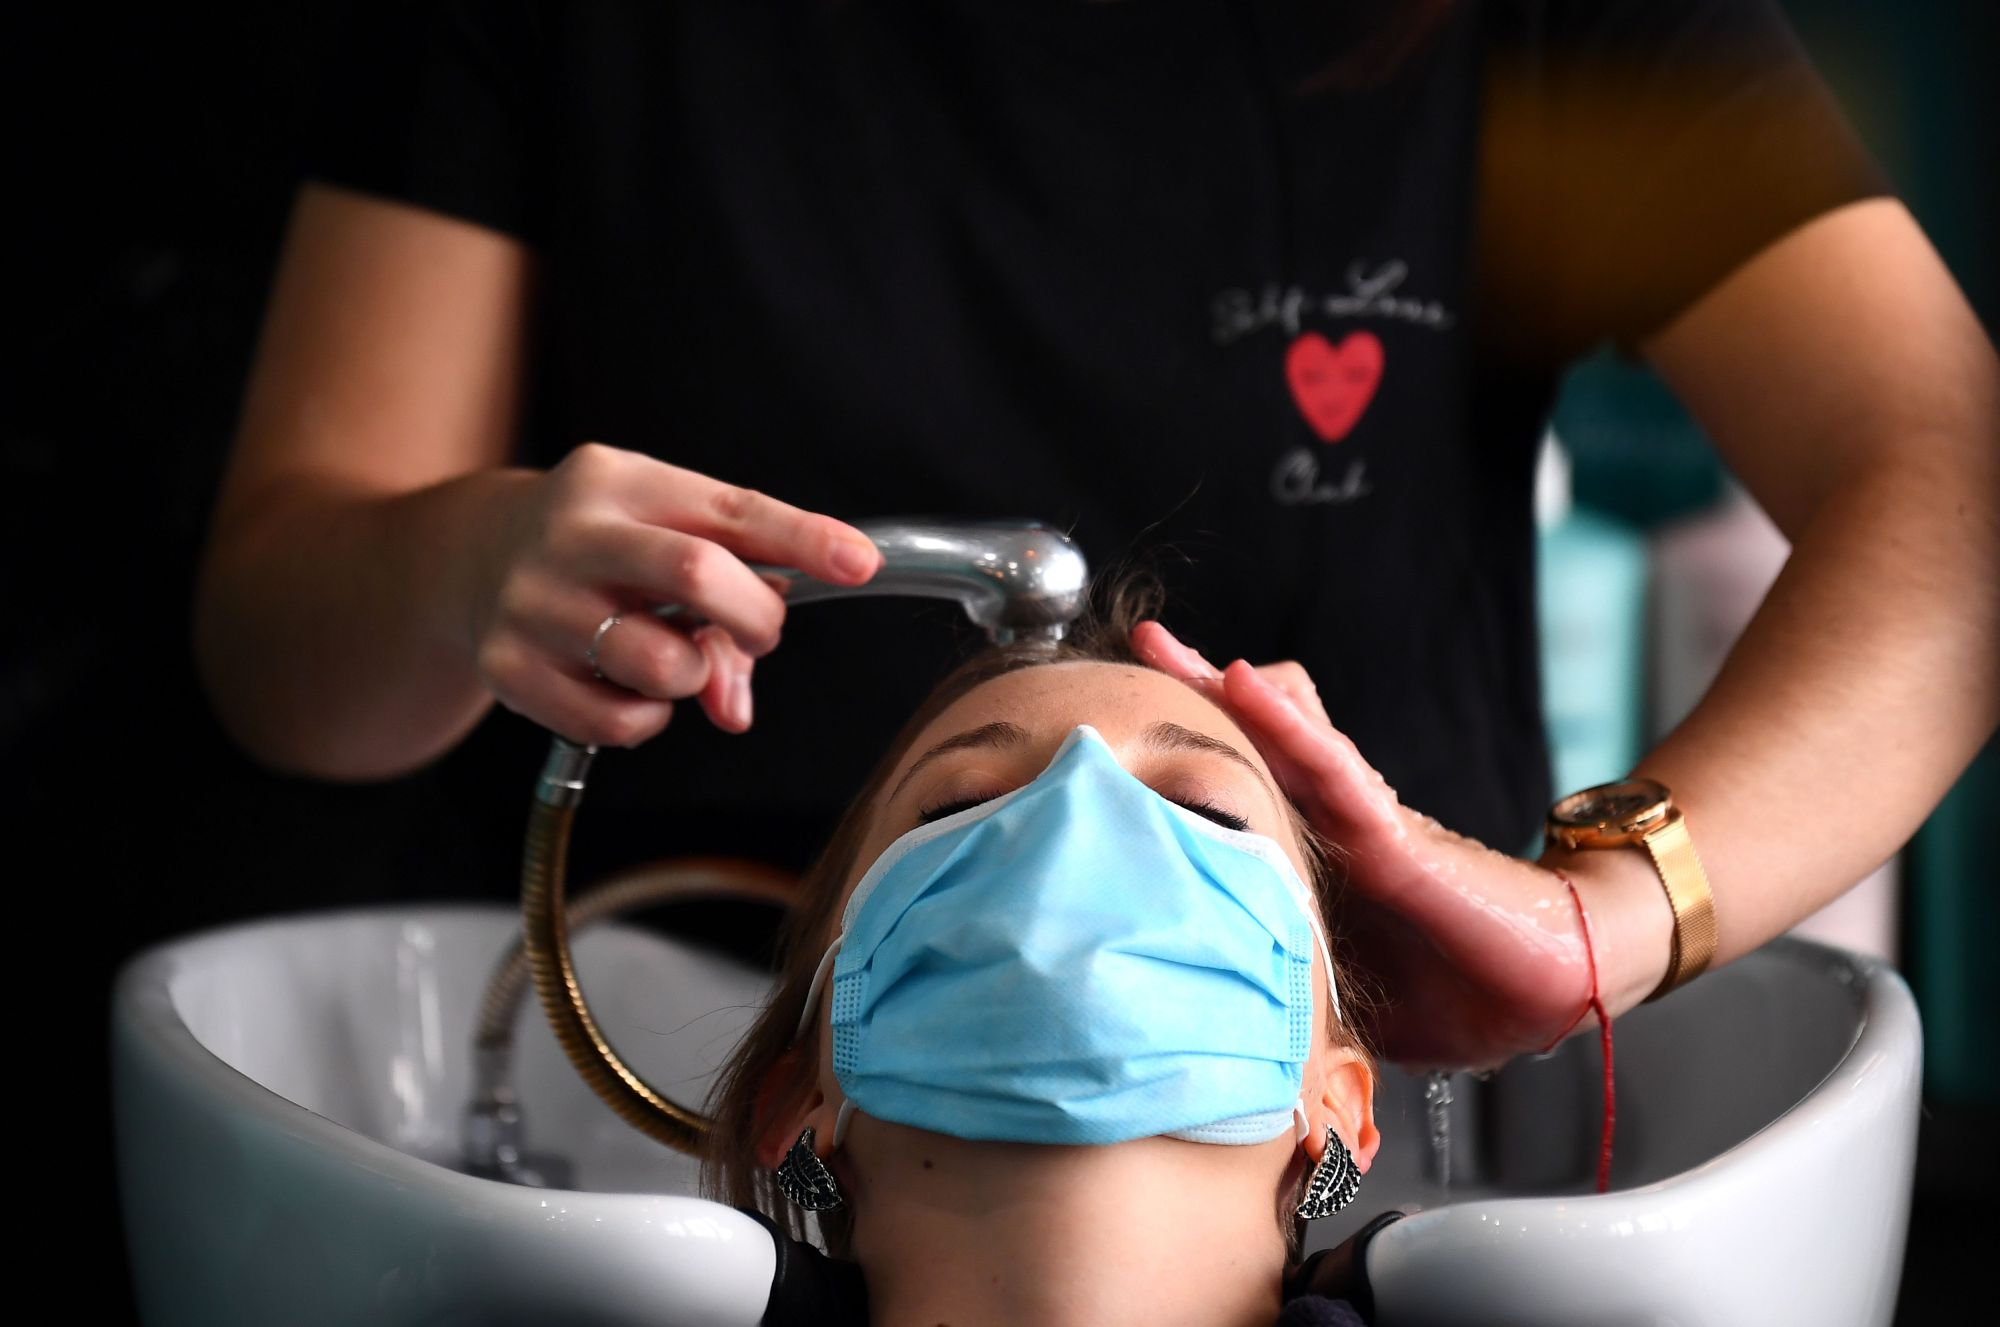 A nurse gets a haircut at a Paris salon where the first two days of work are dedicated to nursing staff on May 12, 2020, after France eased lockdown measures taken to curb the spread of COVID-19. (Franck Fife / AFP / Getty Images)